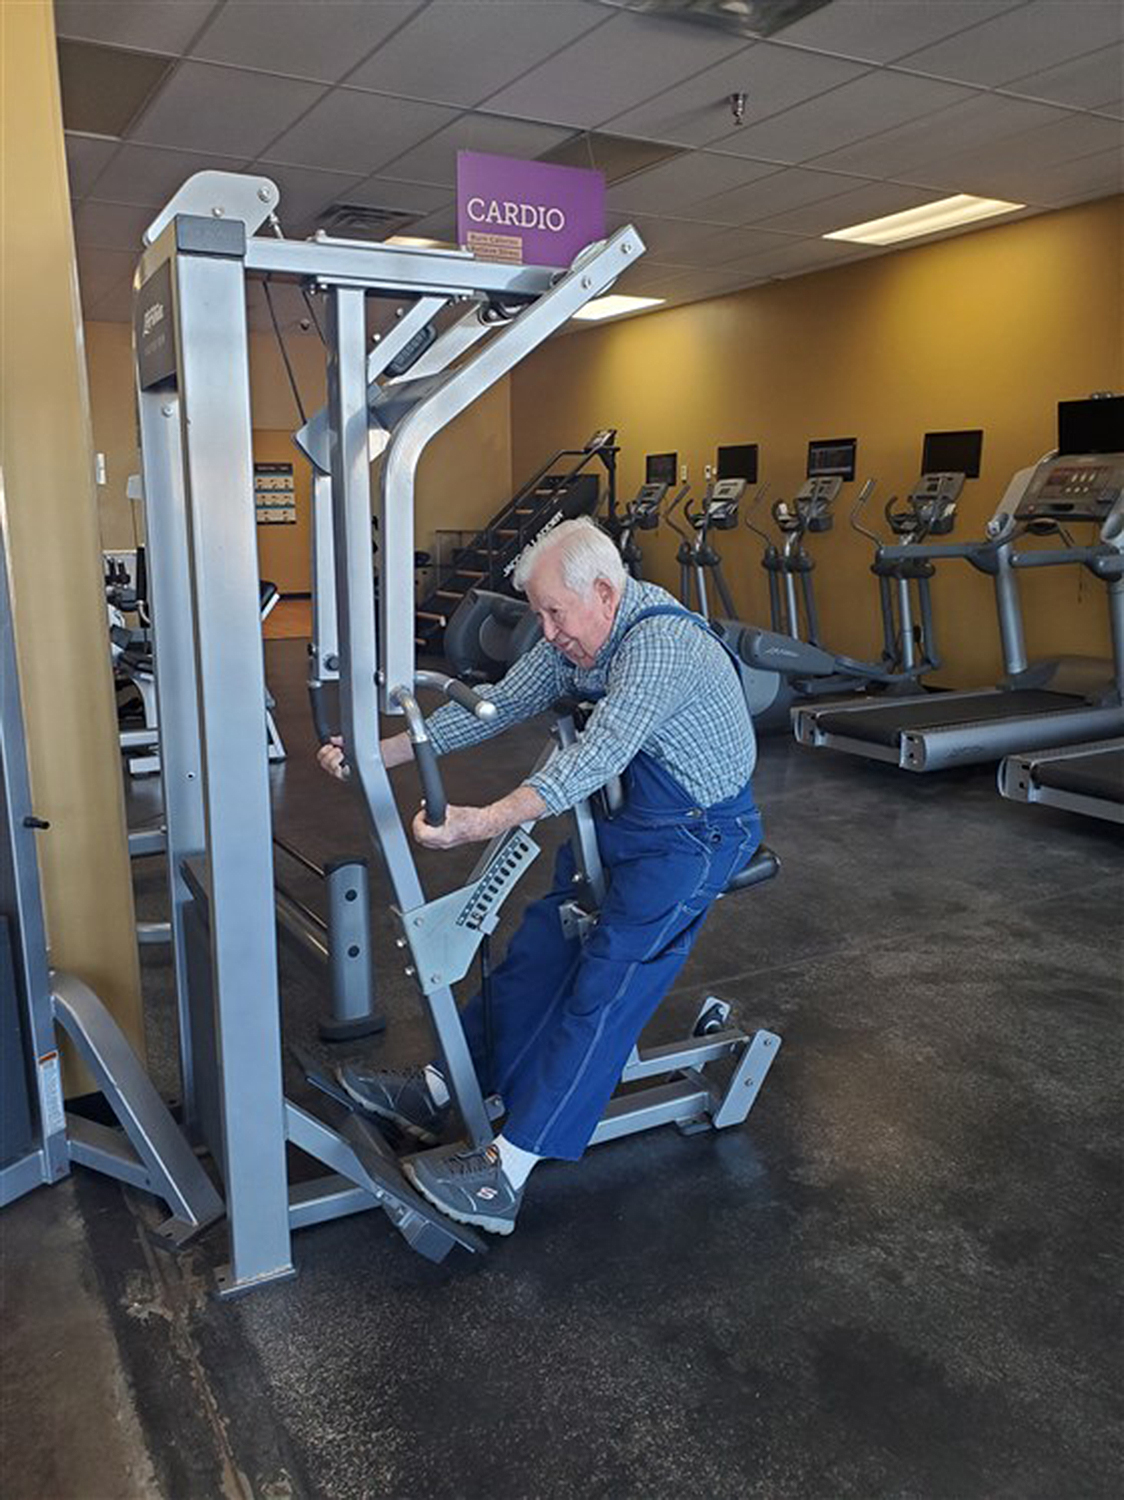 lloyd black works out at a gym in his overalls at 91 years old